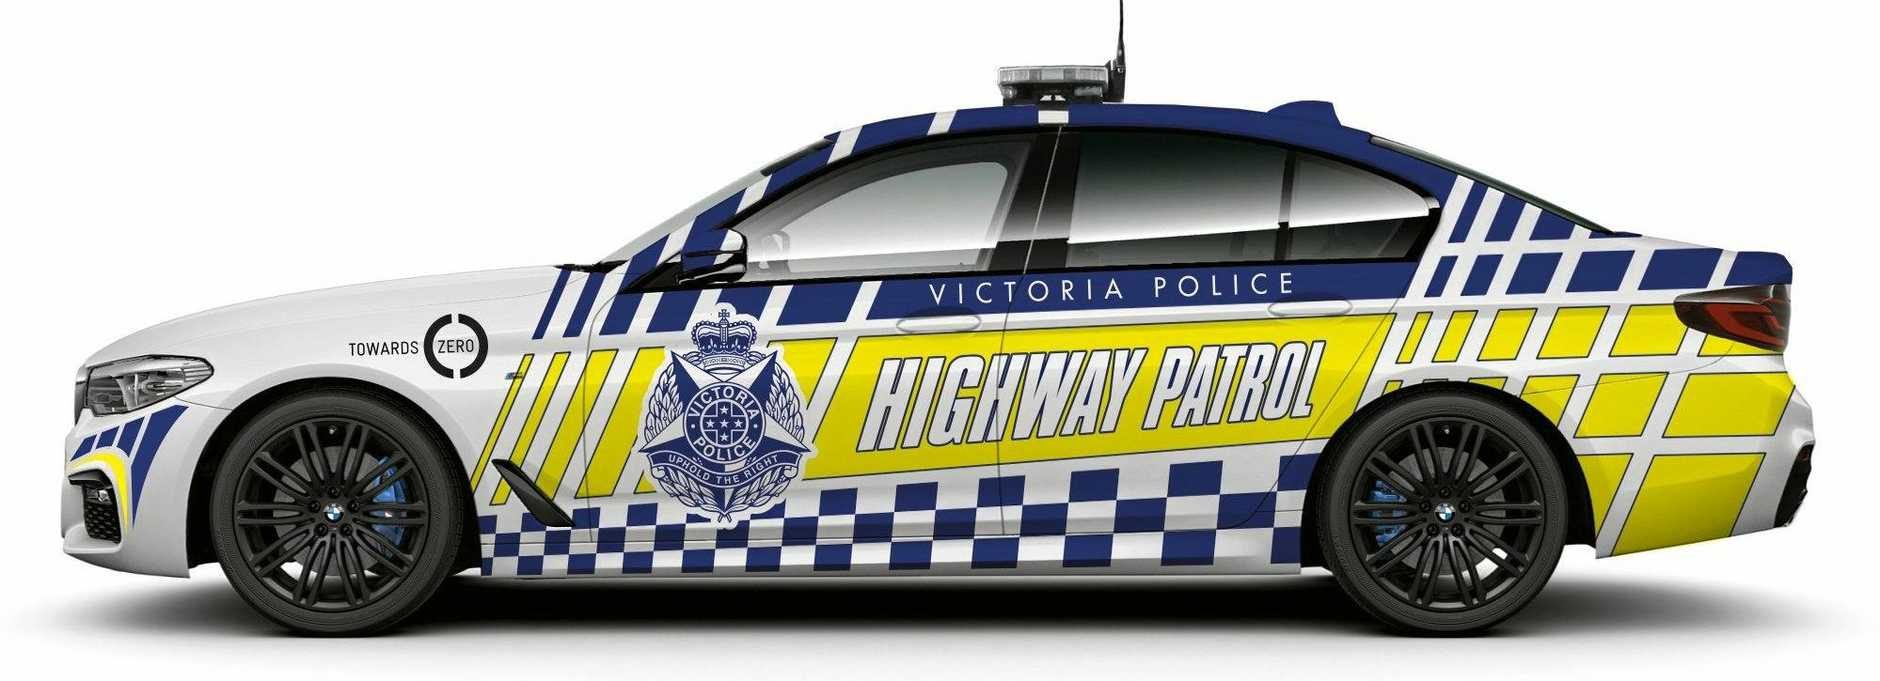 An illustration of how the Victoria Police vehicles could look.